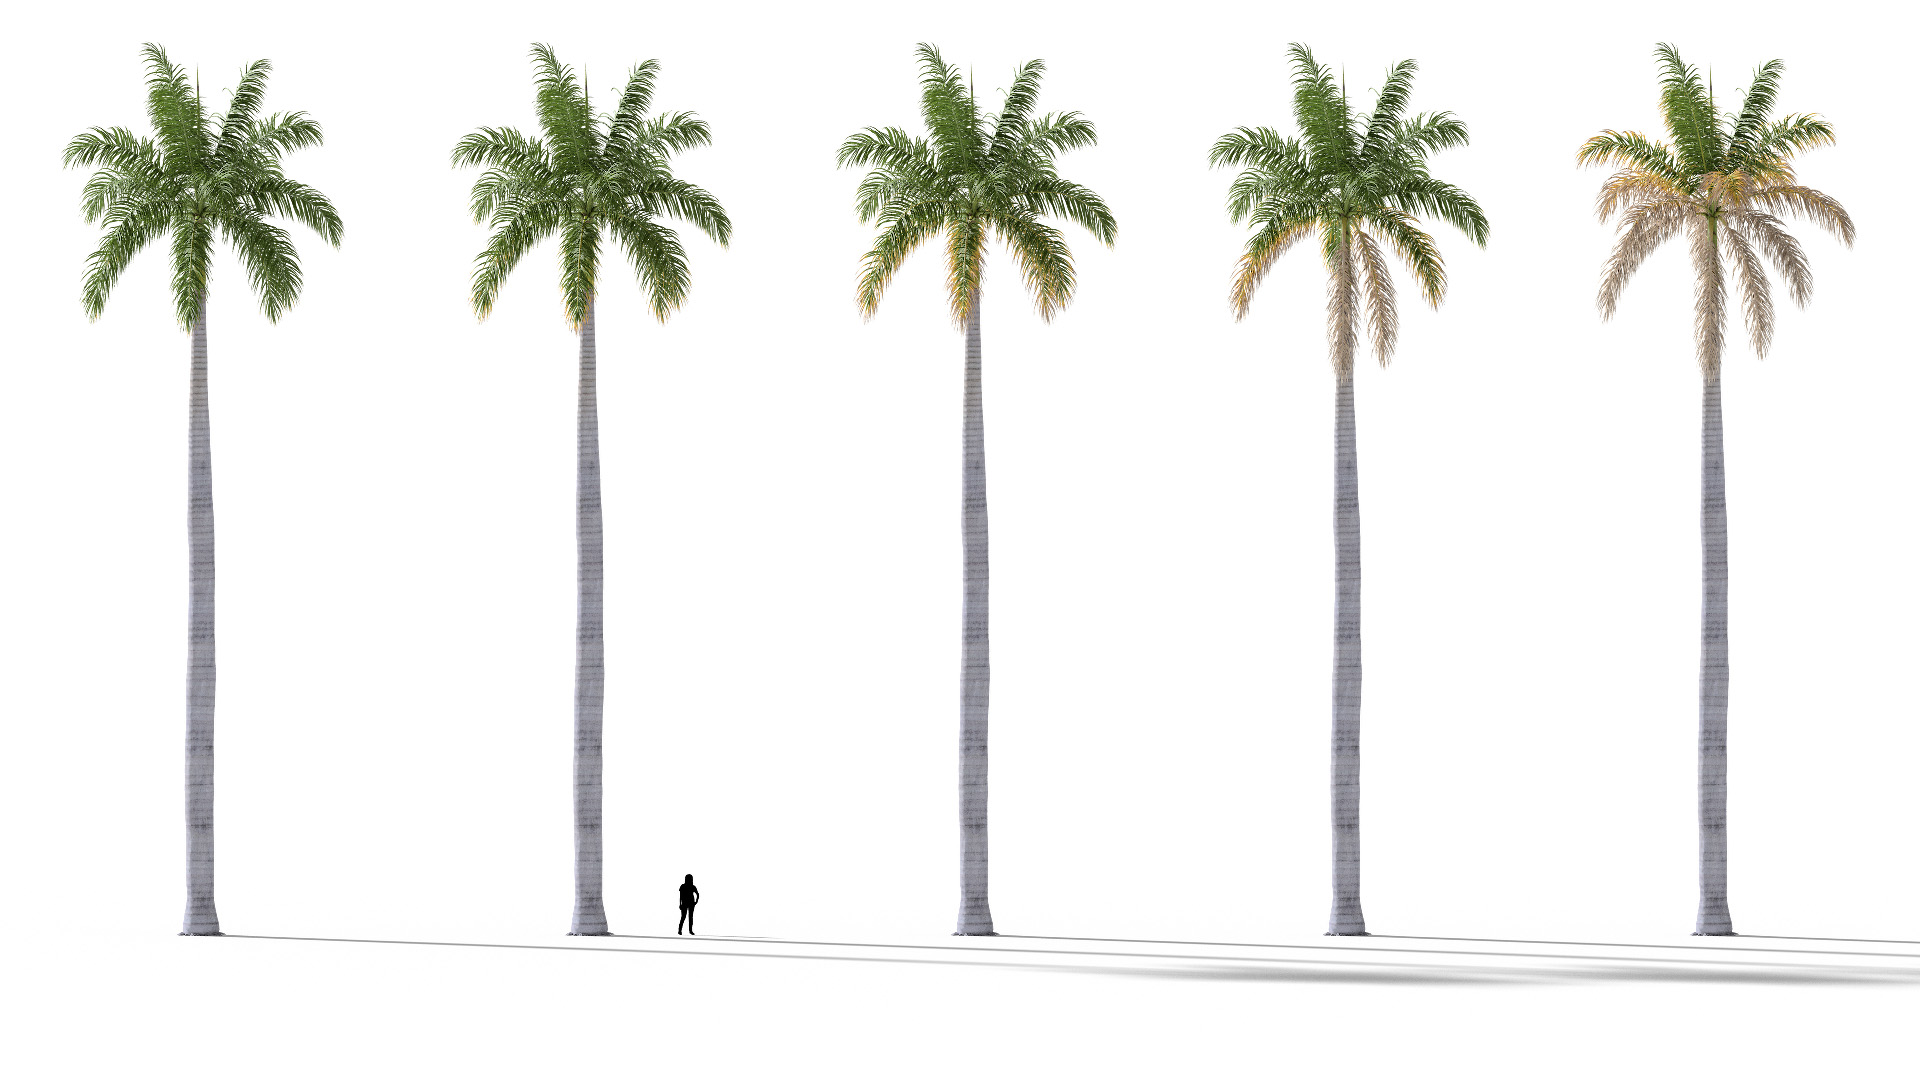 3D model of the Royal palm Roystonea regia health variations